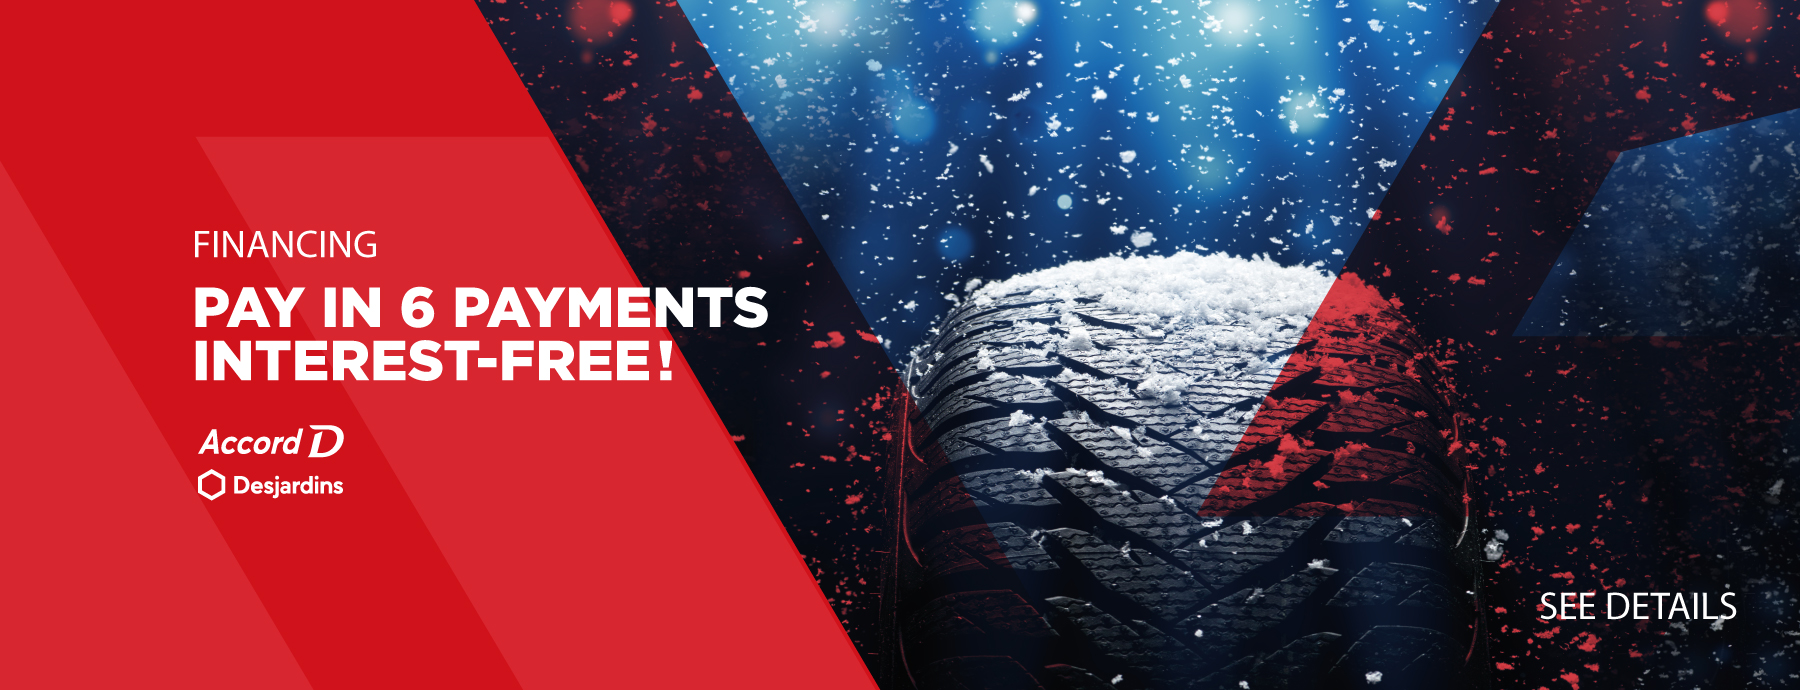 New 12 payments* interest-free - Buy online with Accord D